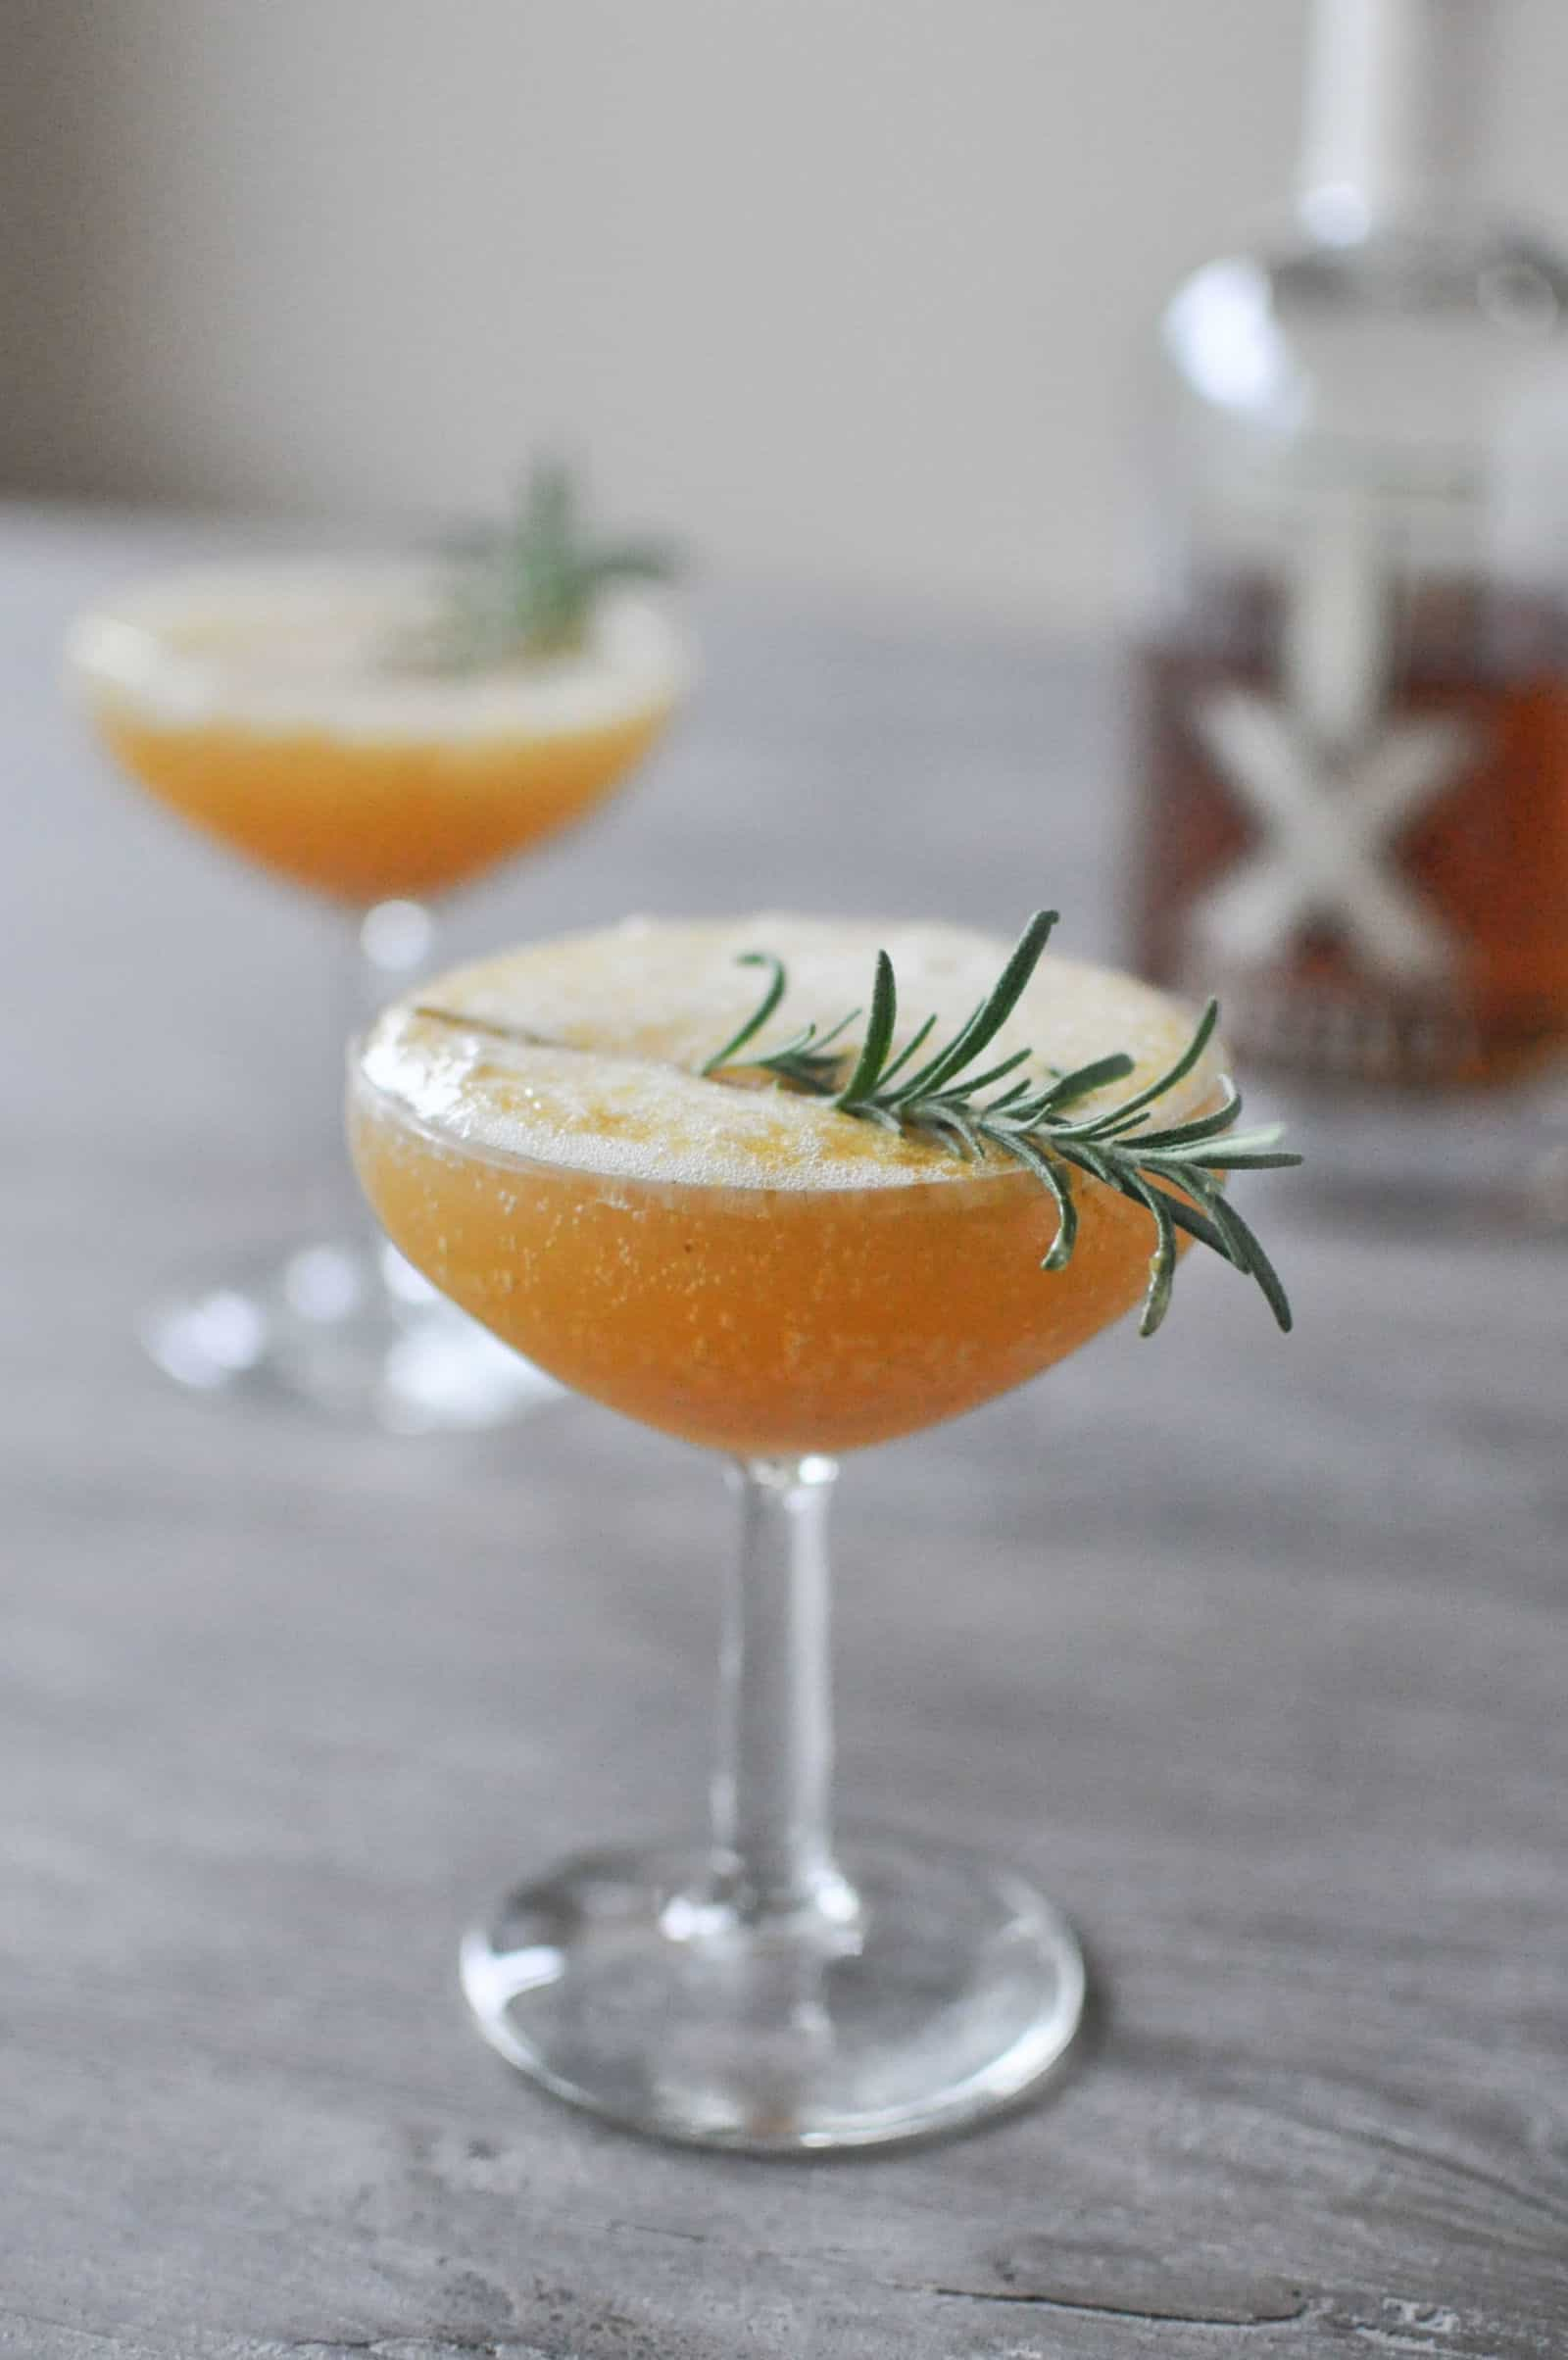 The harvest sparkle cocktail